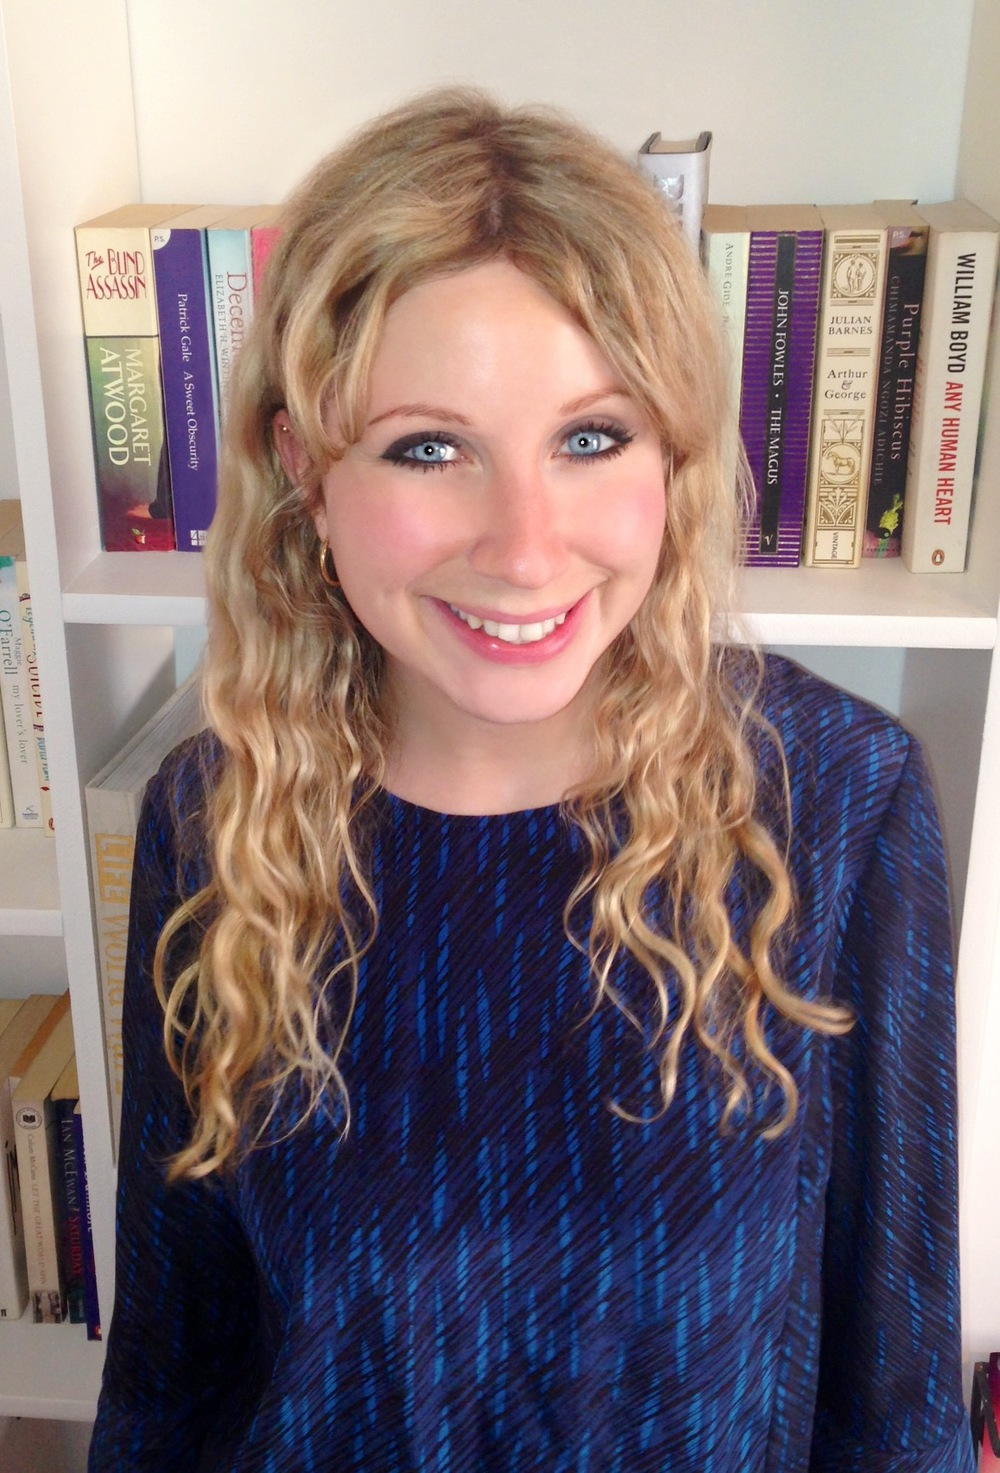 Fenella Bates is an editor at  Michael Joseph, publishing commercial non-fiction. She has worked with authors including Tanya Burr and Caspar Lee, Amelia Freer and Lady Gaga.